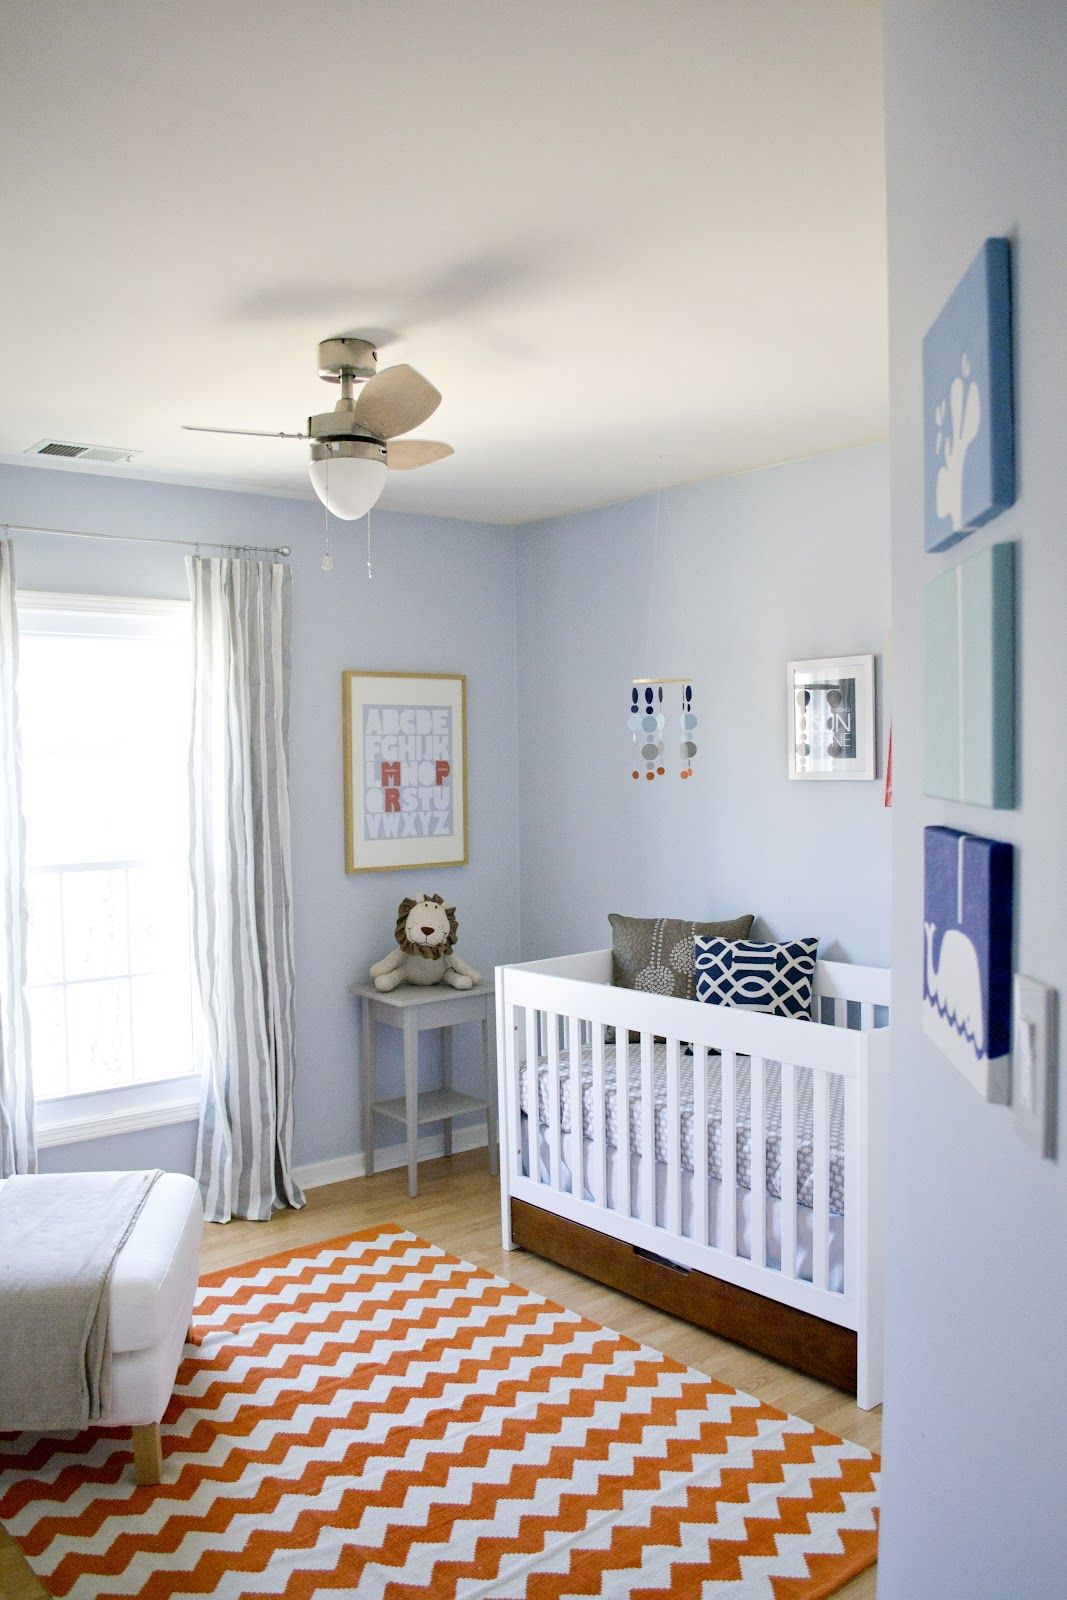 Modern Baby Boy Room: With All The Choices And Nursery Design Trends Offered, A